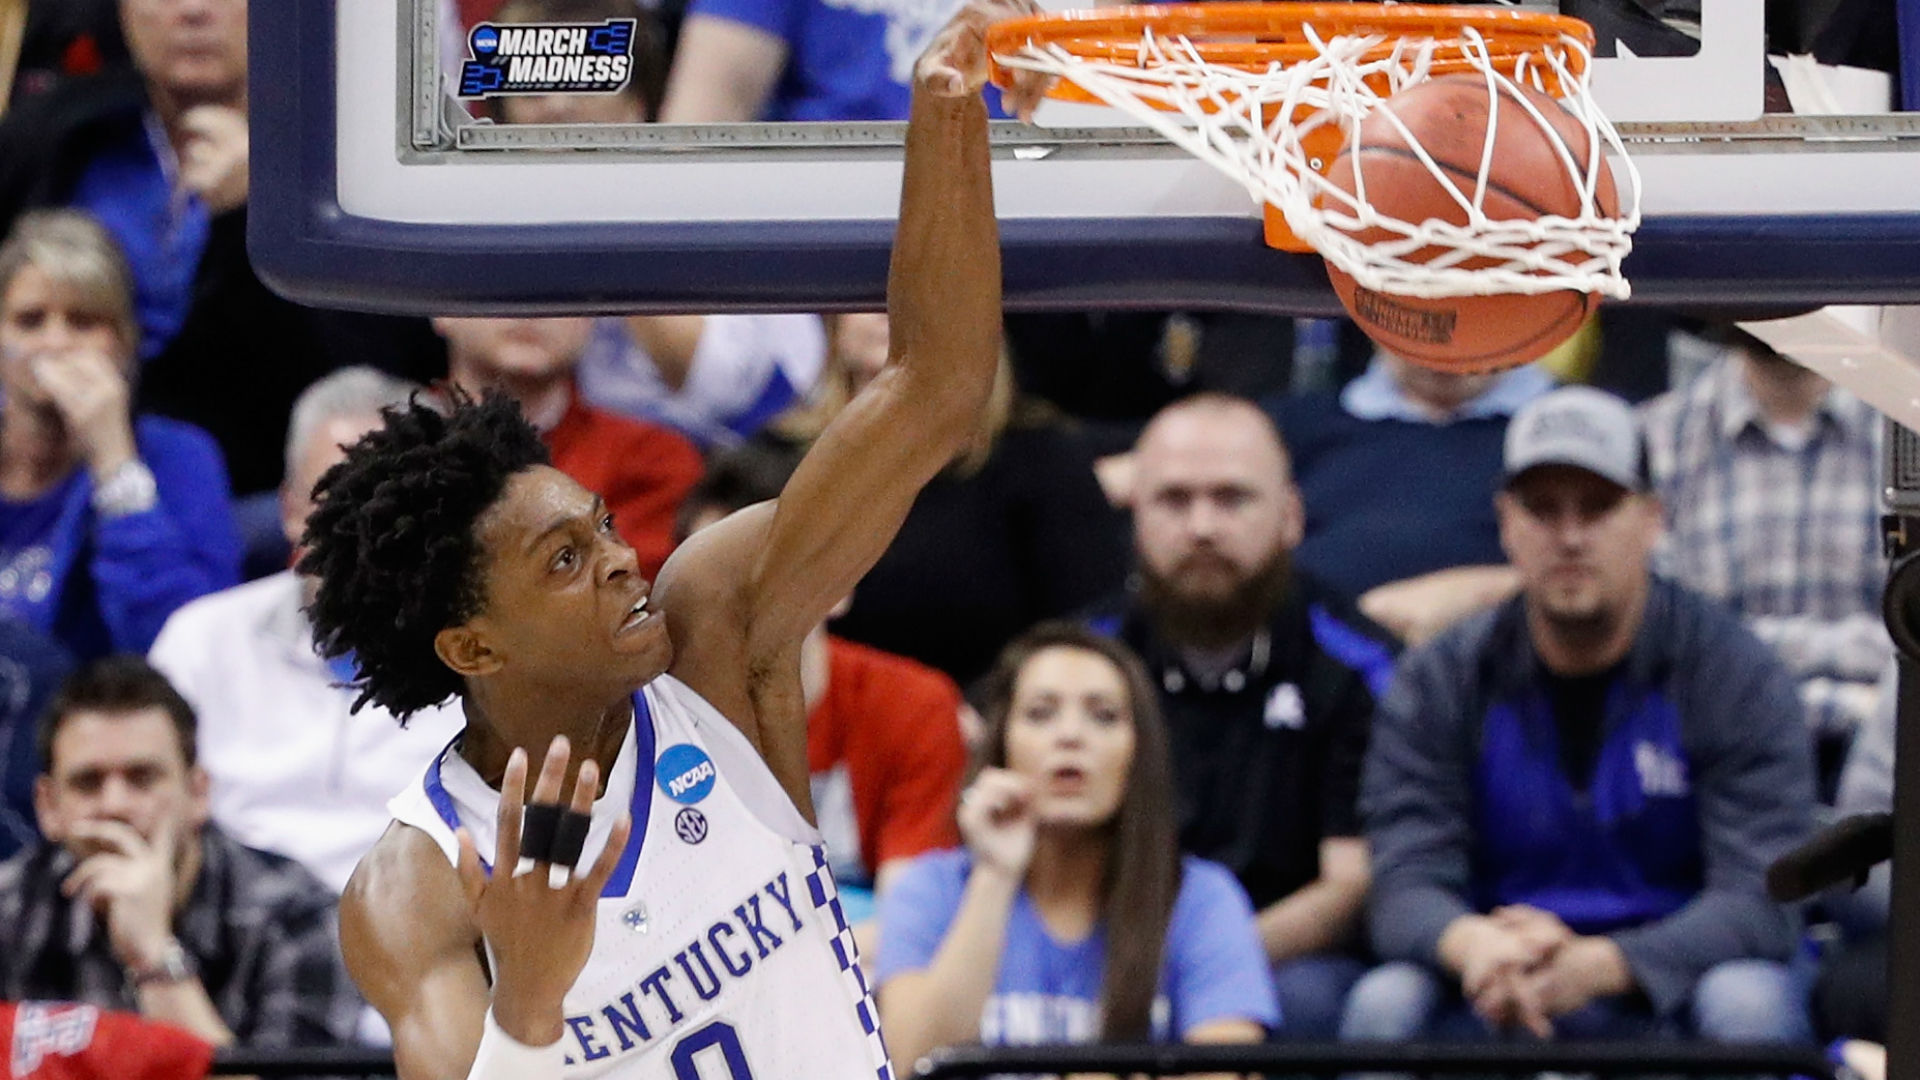 NCAA tournament: Late jumper to lift North Carolina to Final Four